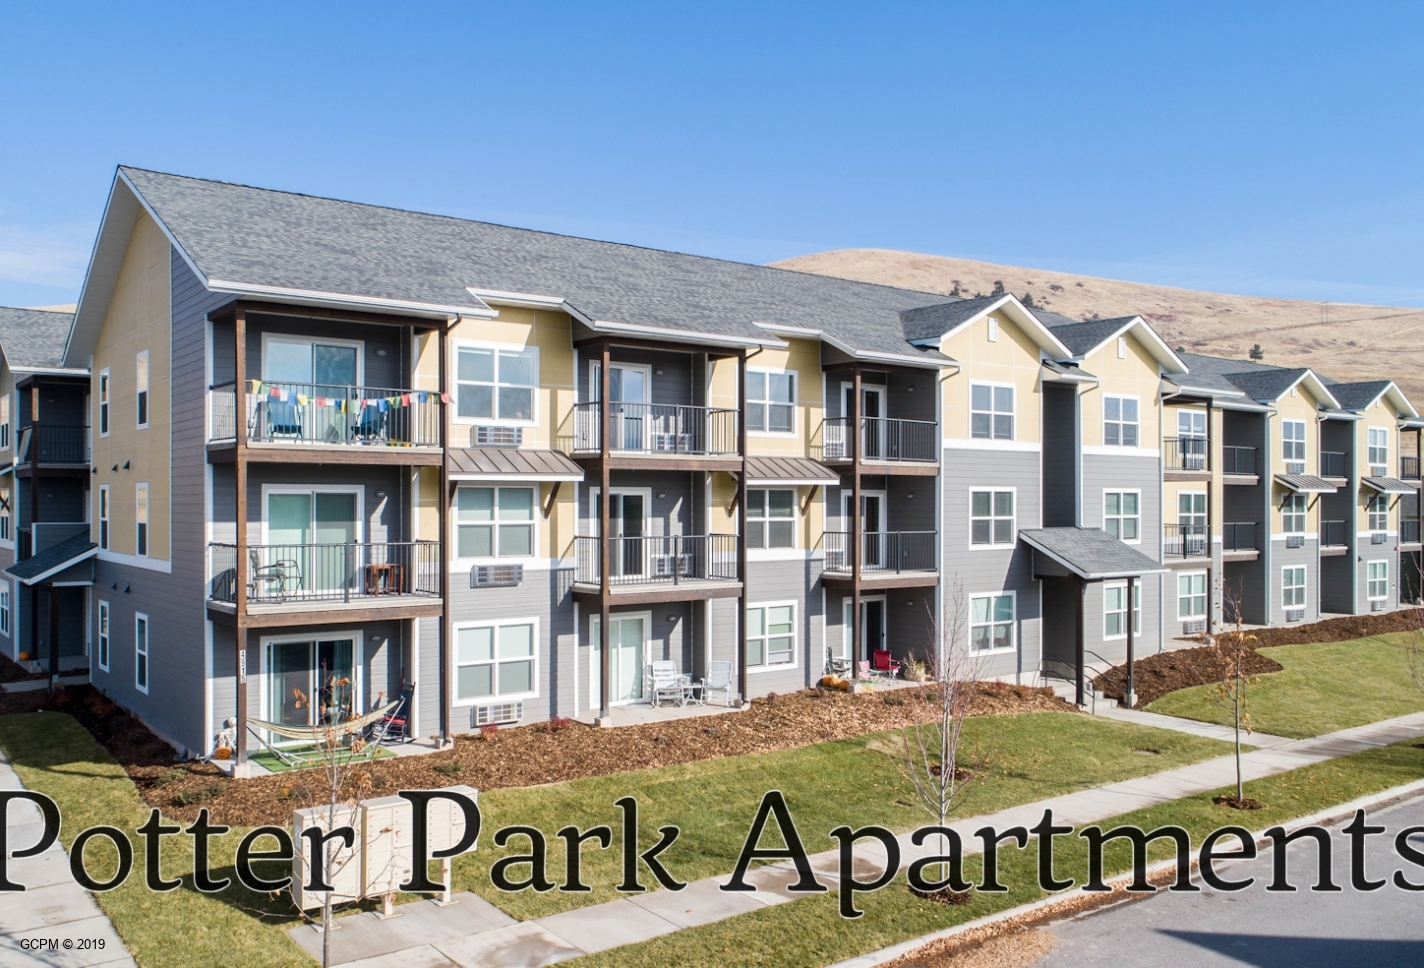 Quality New Apartments Available - 4915 Potter Park Loop - Missoula, Mt